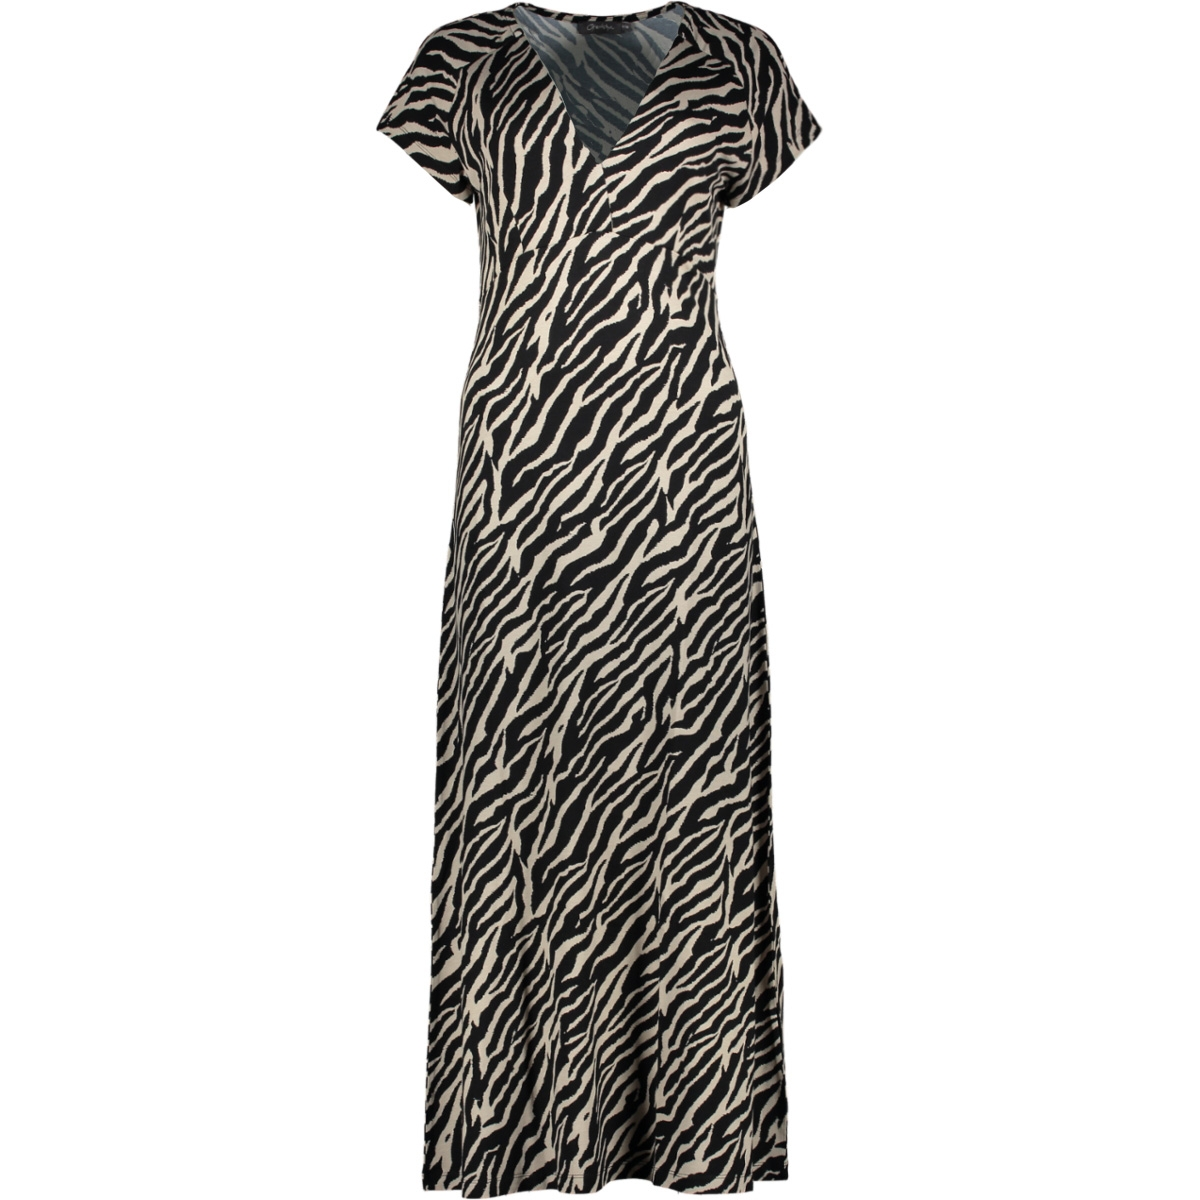 dress zebra jane 07359 60 geisha jurk black/sand